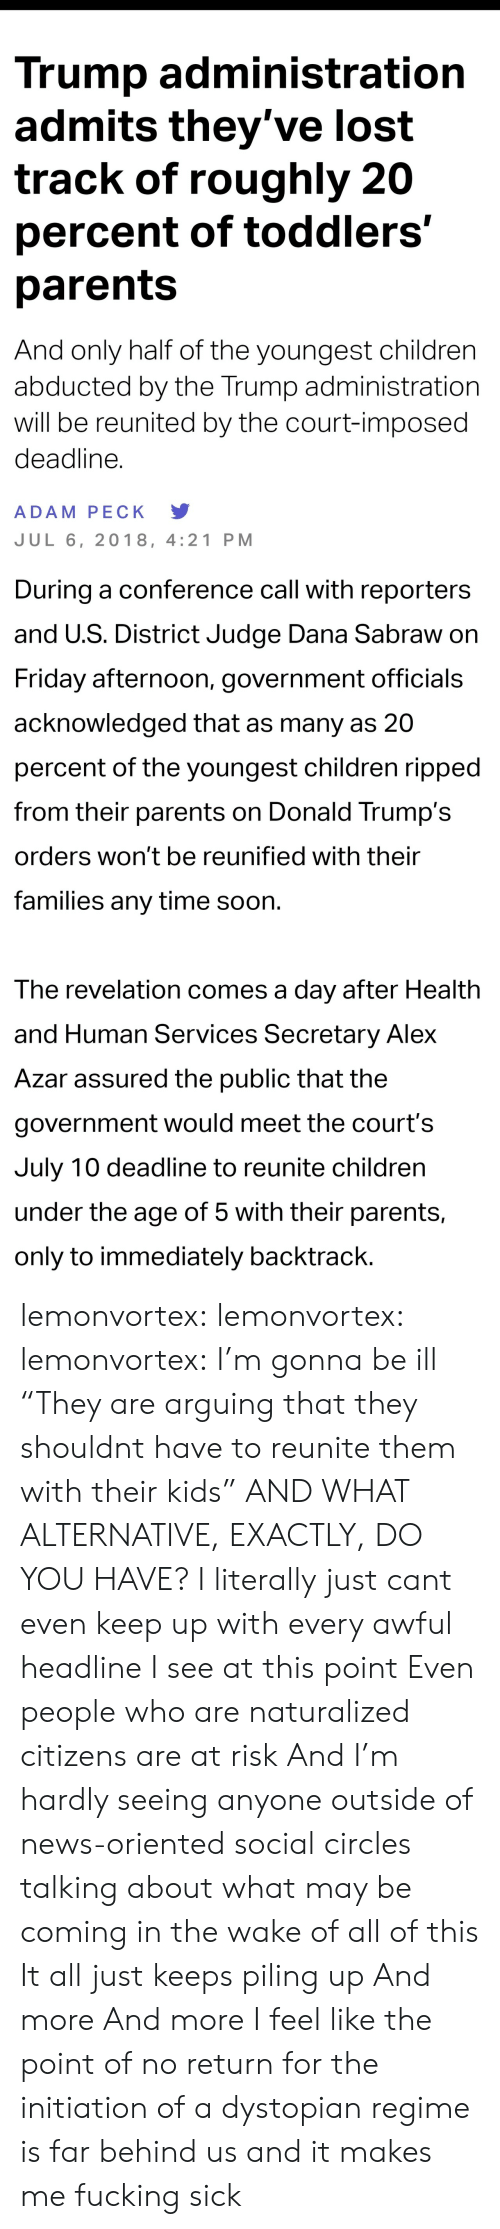 "Nydailynews: Trump administratiorn  admits they've lost  track of roughly 20  percent of toddlers'  parents  And only half of the youngest children  abducted by the Trump administration  will be reunited by the court-imposed  deadline.  ADAM PECK Y  JUL 6, 2018, 4:21 PM   During a conference call with reporters  and U.S. District Judge Dana Sabraw on  Friday afternoon, government officials  acknowledged that as many as 20  percent of the youngest children ripped  from their parents on Donald Trump's  orders won't be reunified with their  families any time soon  The revelation comes a day after Health  and Human Services Secretary Alex  Azar assured the public that the  government would meet the court's  July 10 deadline to reunite children  under the age of 5 with their parents,  only to immediately backtrack lemonvortex:  lemonvortex:   lemonvortex:  I'm gonna be ill   ""They are arguing that they shouldnt have to reunite them with their kids""  AND WHAT ALTERNATIVE, EXACTLY, DO YOU HAVE?   I literally just cant even keep up with every awful headline I see at this point  Even people who are naturalized citizens are at risk  And I'm hardly seeing anyone outside of news-oriented social circles talking about what may be coming in the wake of all of this  It all just keeps piling up  And more  And more  I feel like the point of no return for the initiation of a dystopian regime is far behind us and it makes me fucking sick"